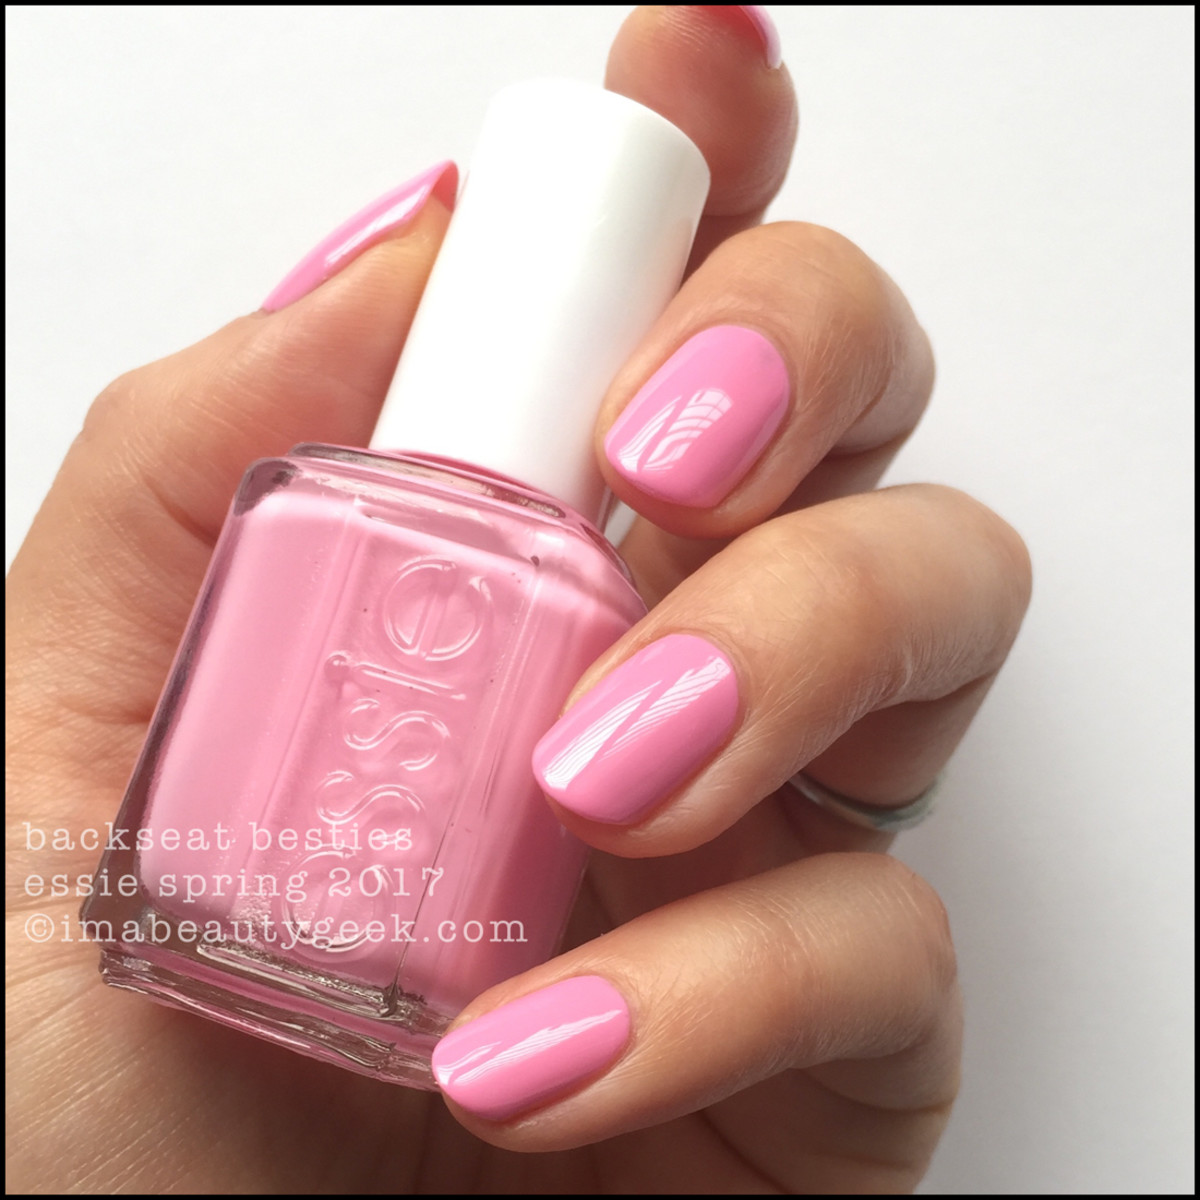 Essie Backseat Besties Spring 2017 Collection